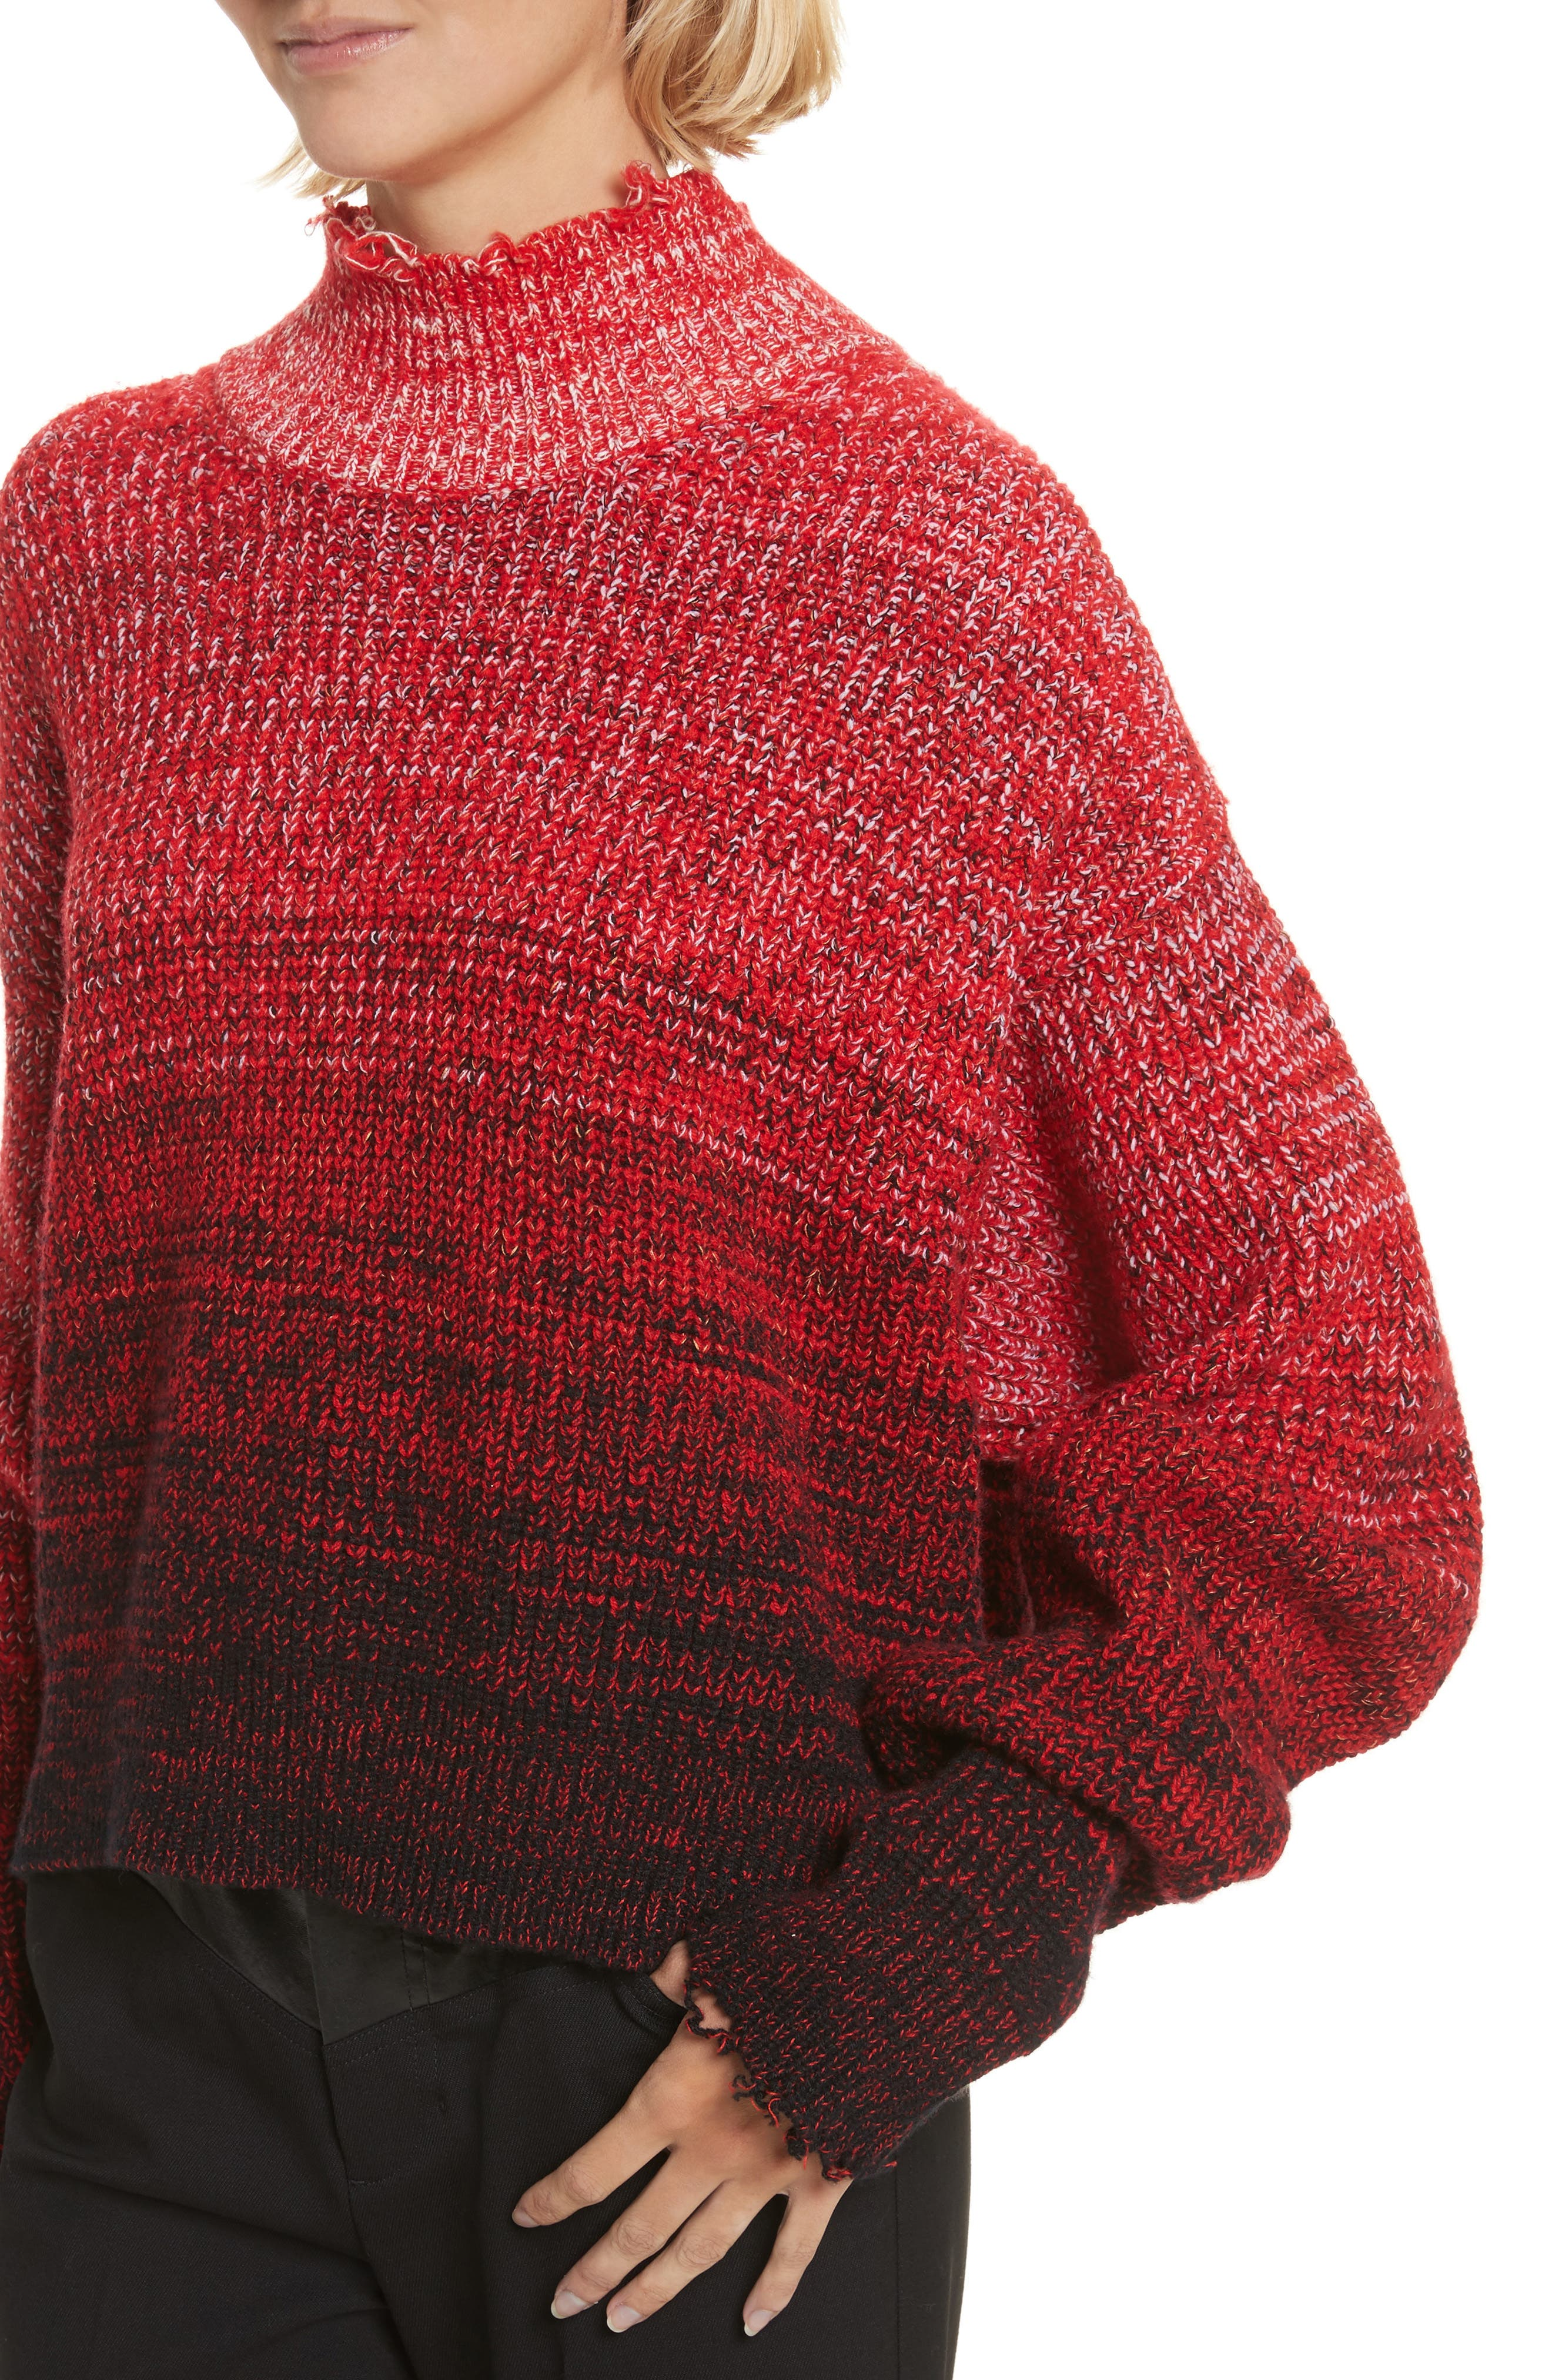 Distressed Marled Patchwork Turtleneck Sweater,                             Alternate thumbnail 4, color,                             Siren